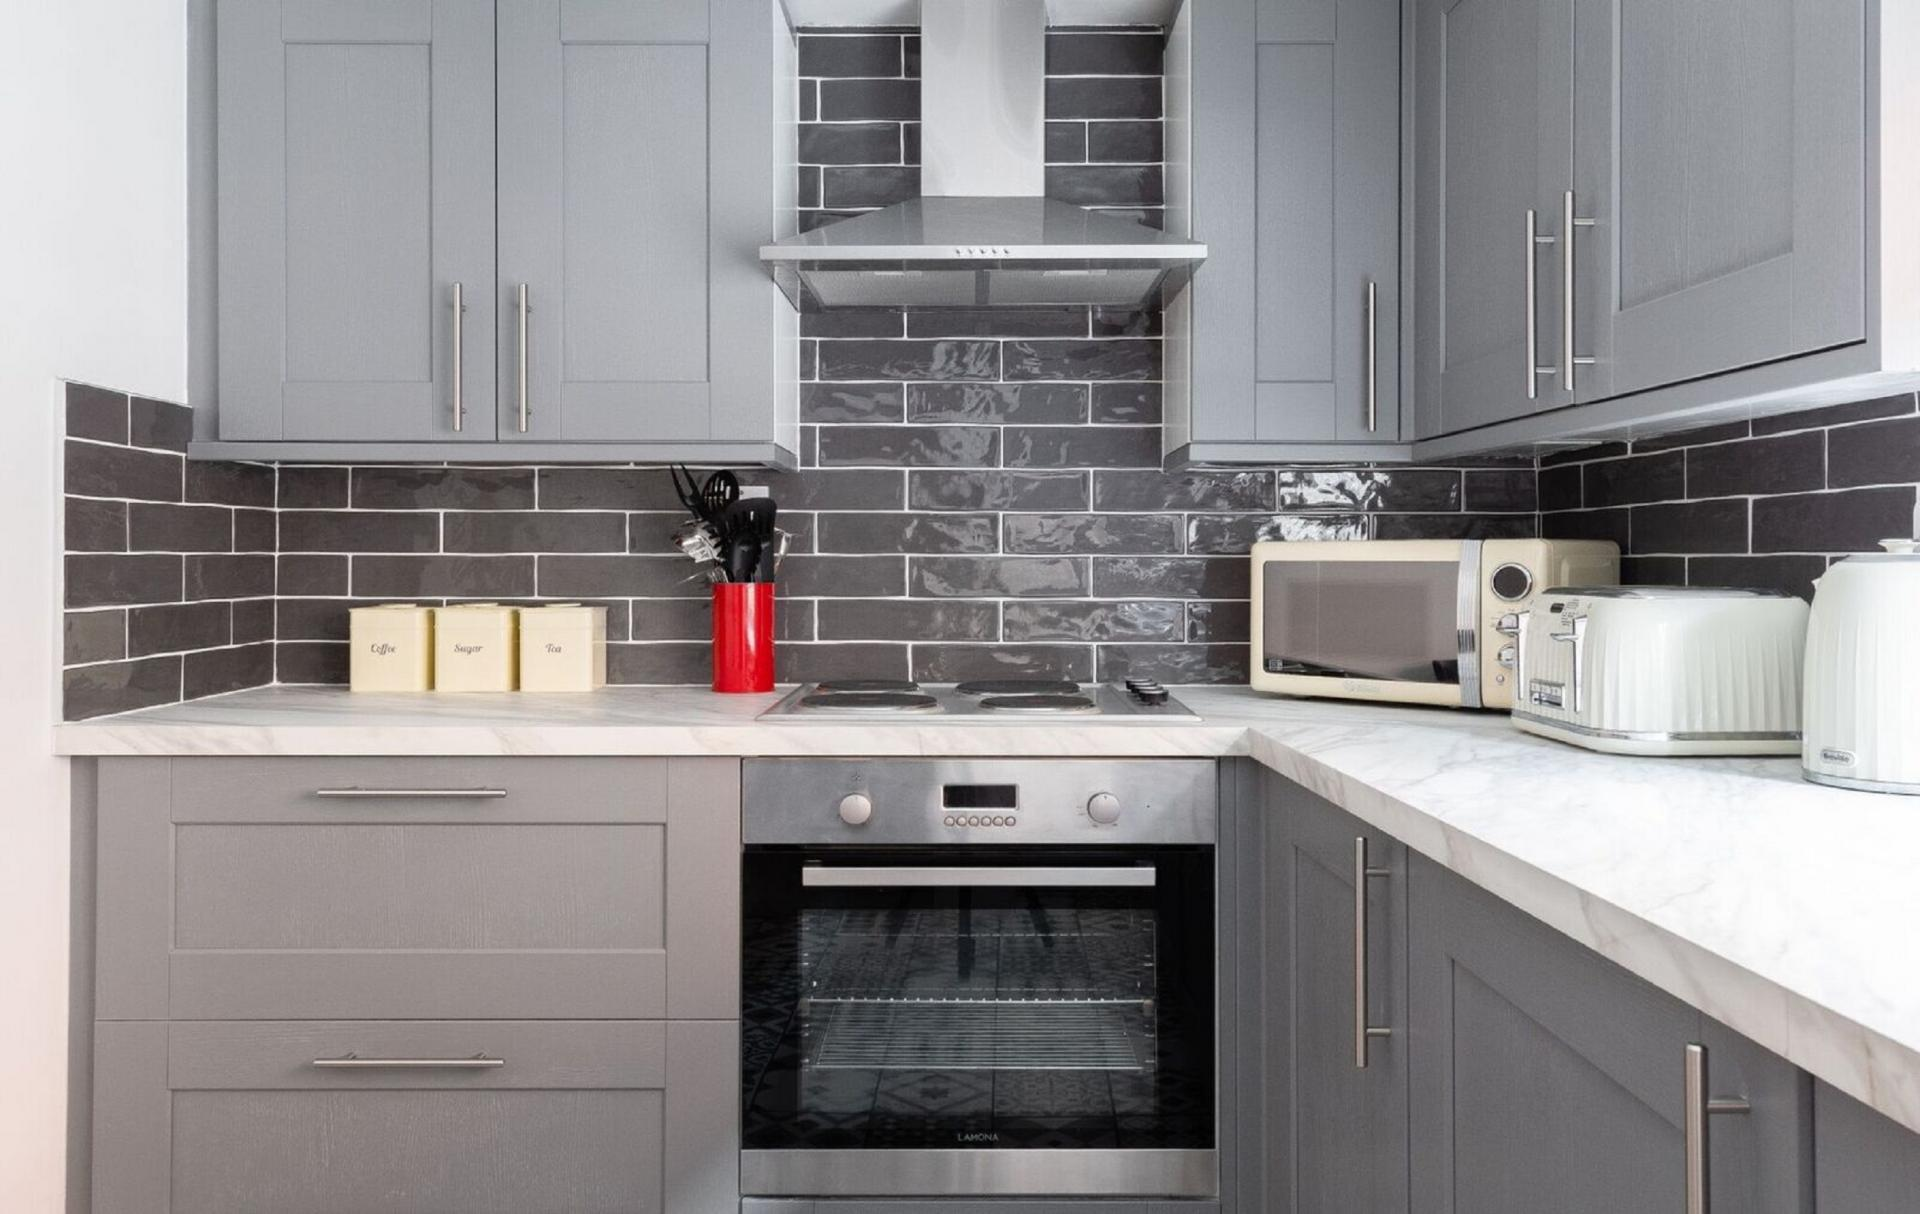 Kitchen at The Oxford Loft, Centre, Oxford - Citybase Apartments